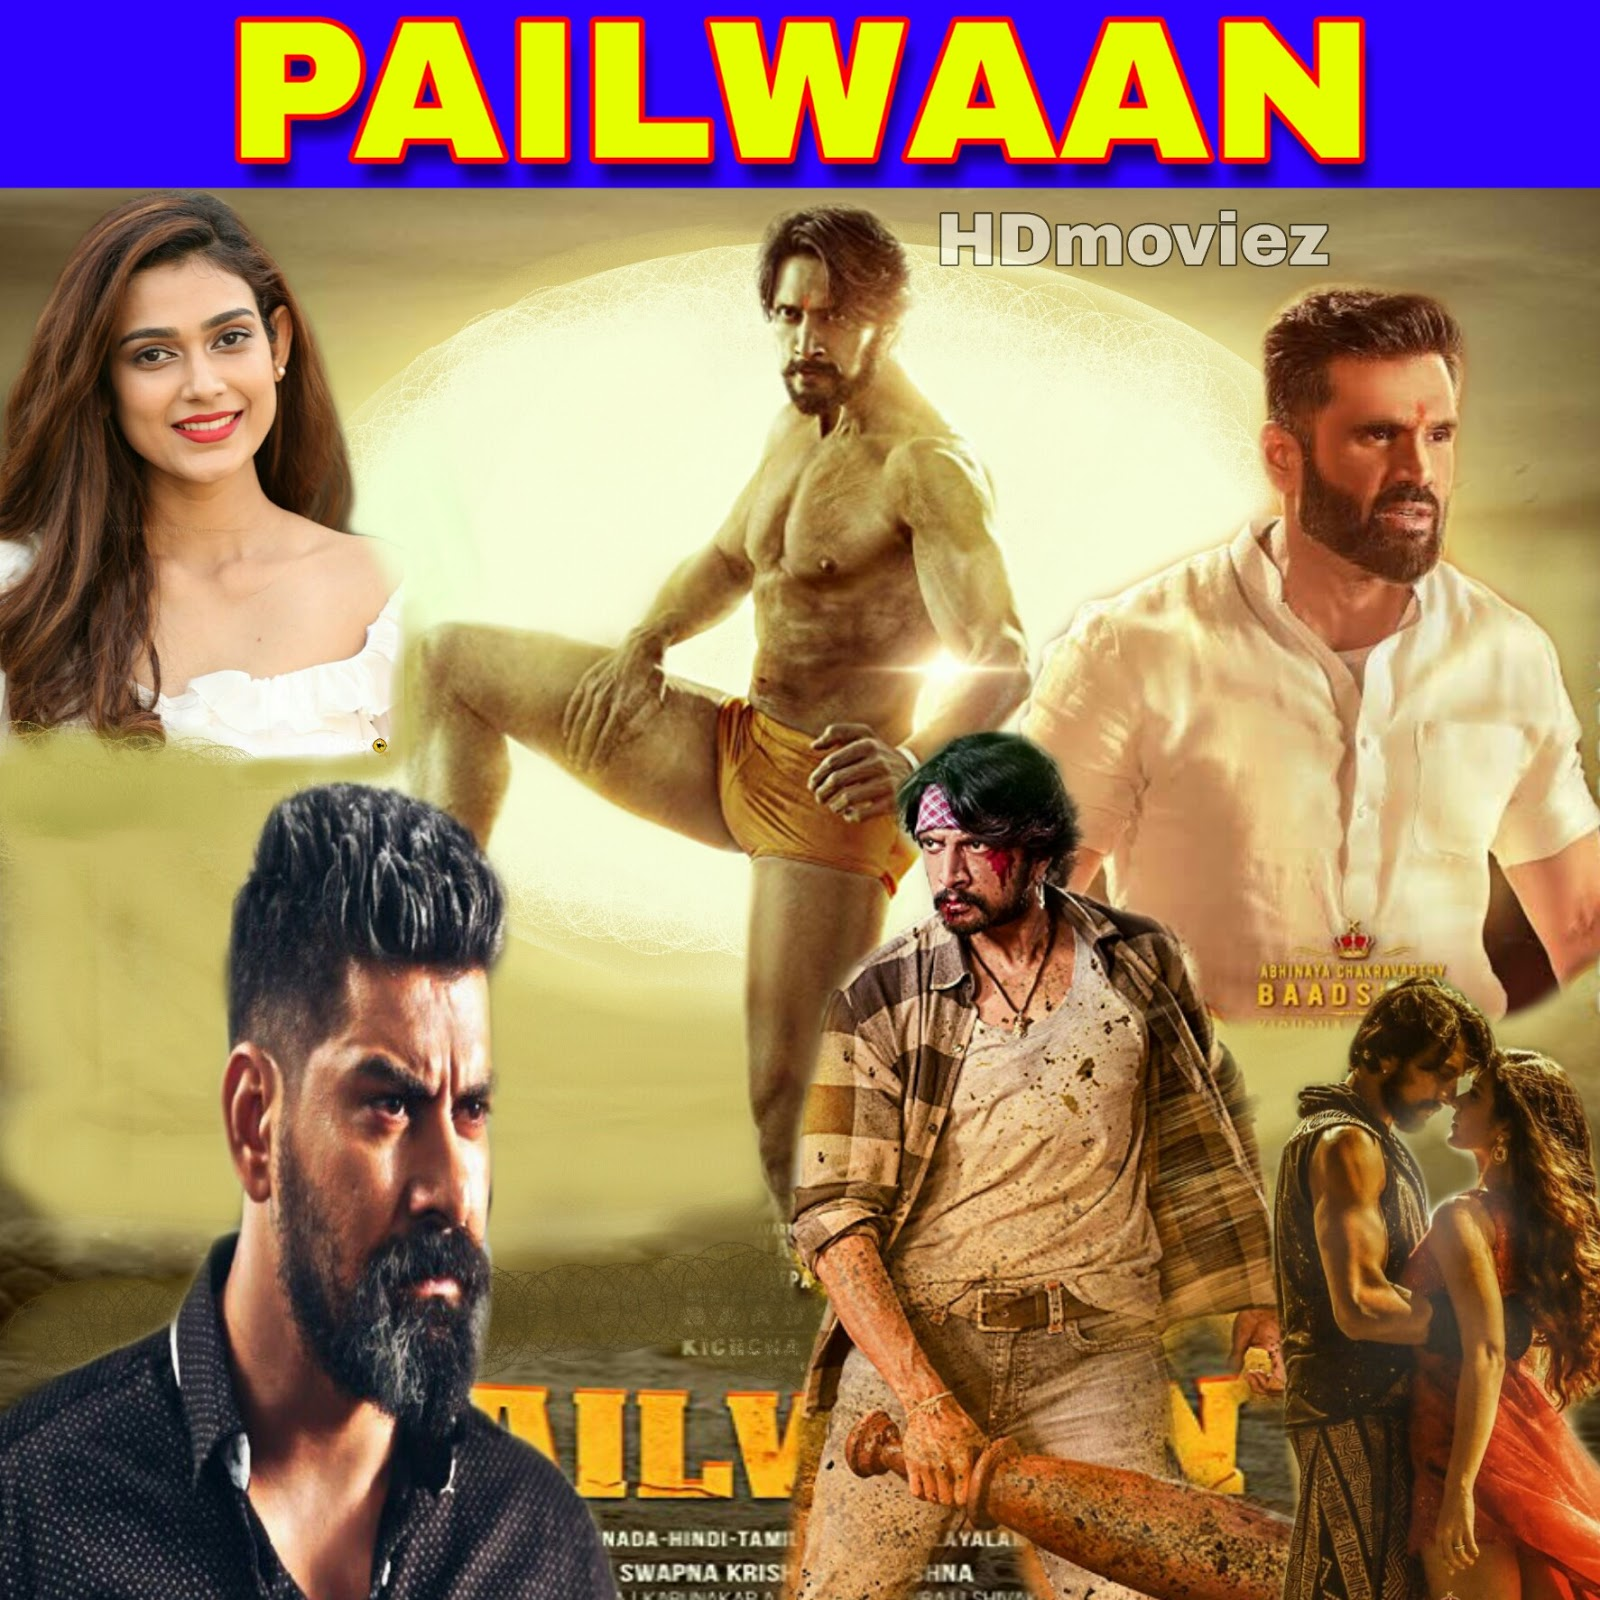 Pailwaan (pehlwan) full movie - Download cinevood club, Filmywap, 300mb, 720p hd Hindi dubbed